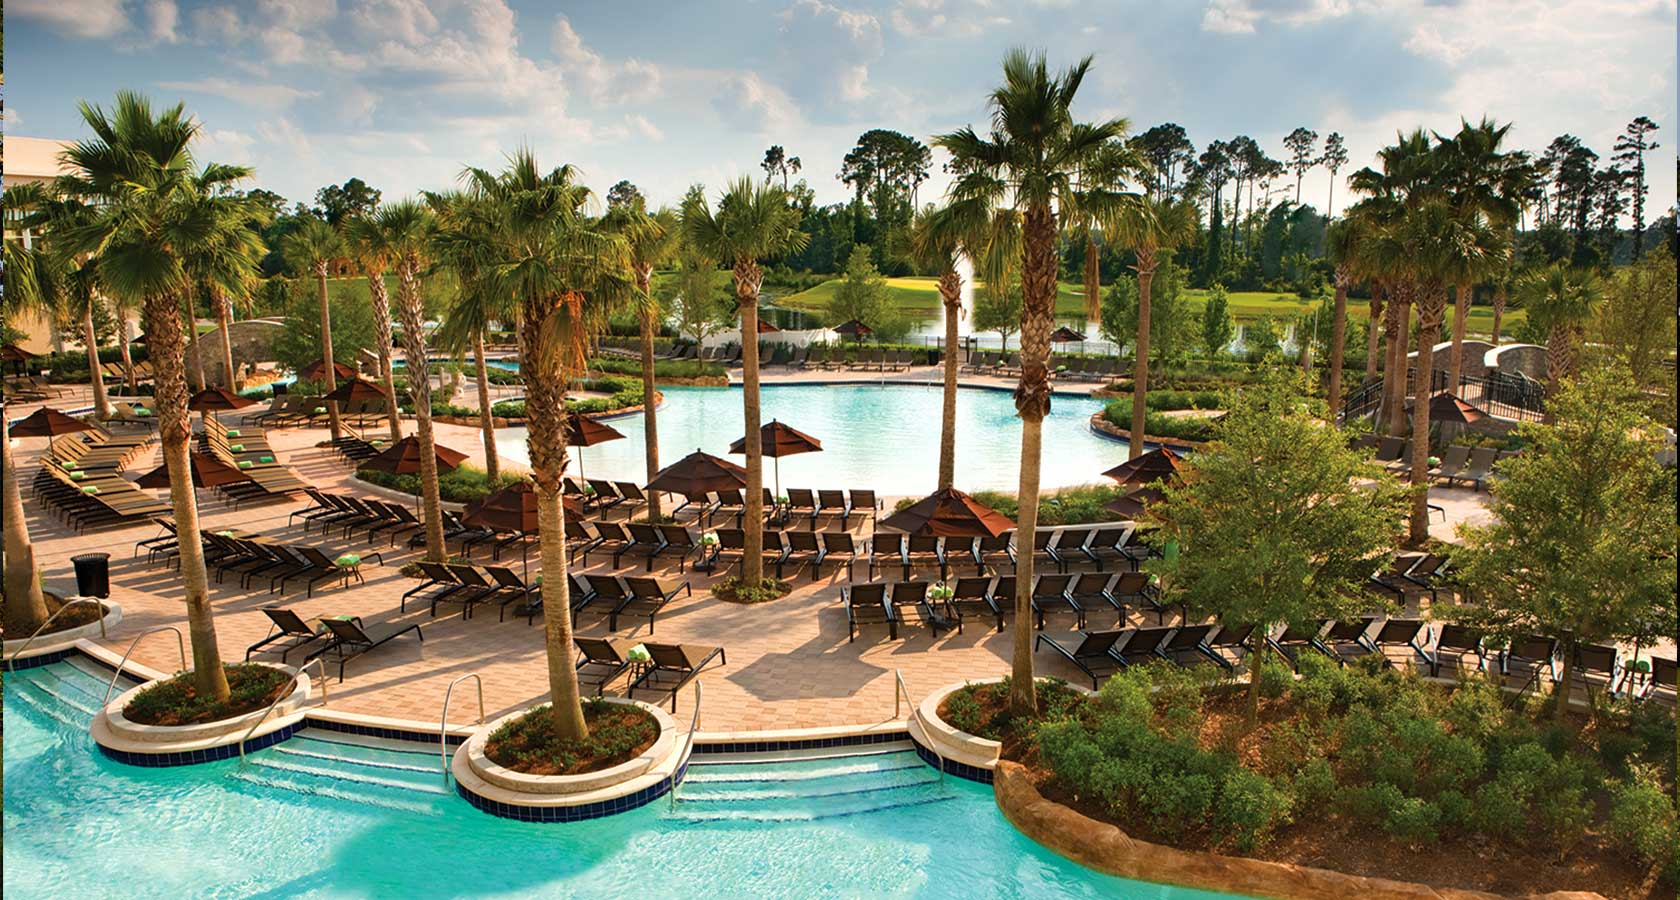 Hilton Bonnet Creek outdoor swimming pools